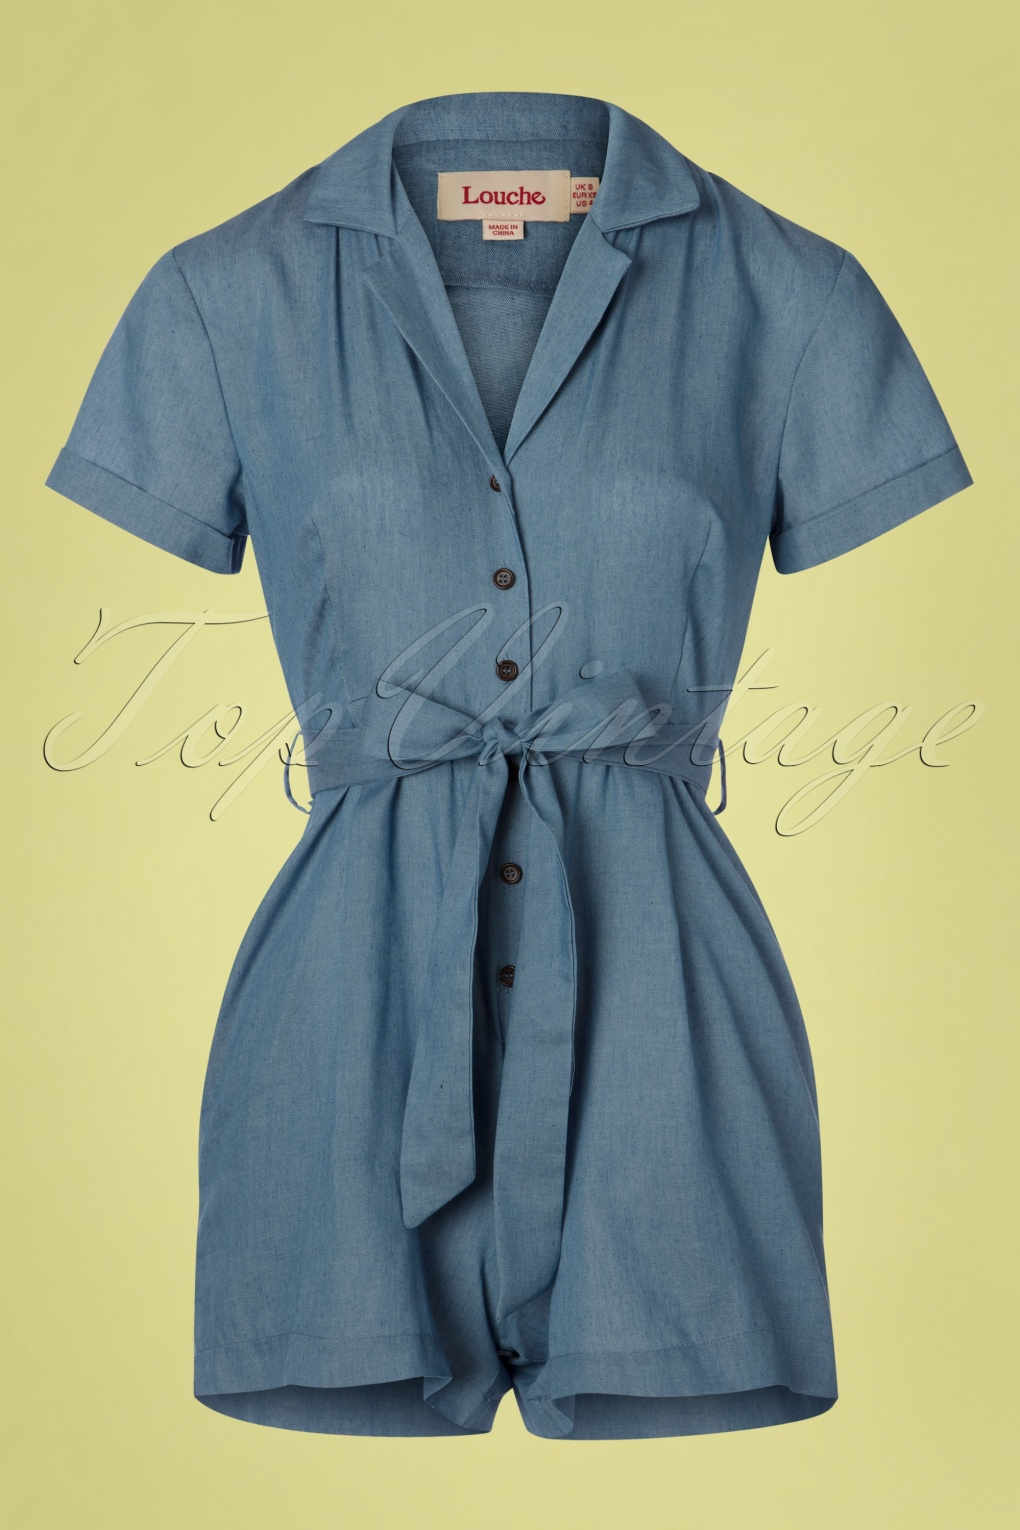 1940s Dresses and Clothing UK | 40s Shoes UK 60s Loeiza Chambray Playsuit in Denim Blue �60.49 AT vintagedancer.com